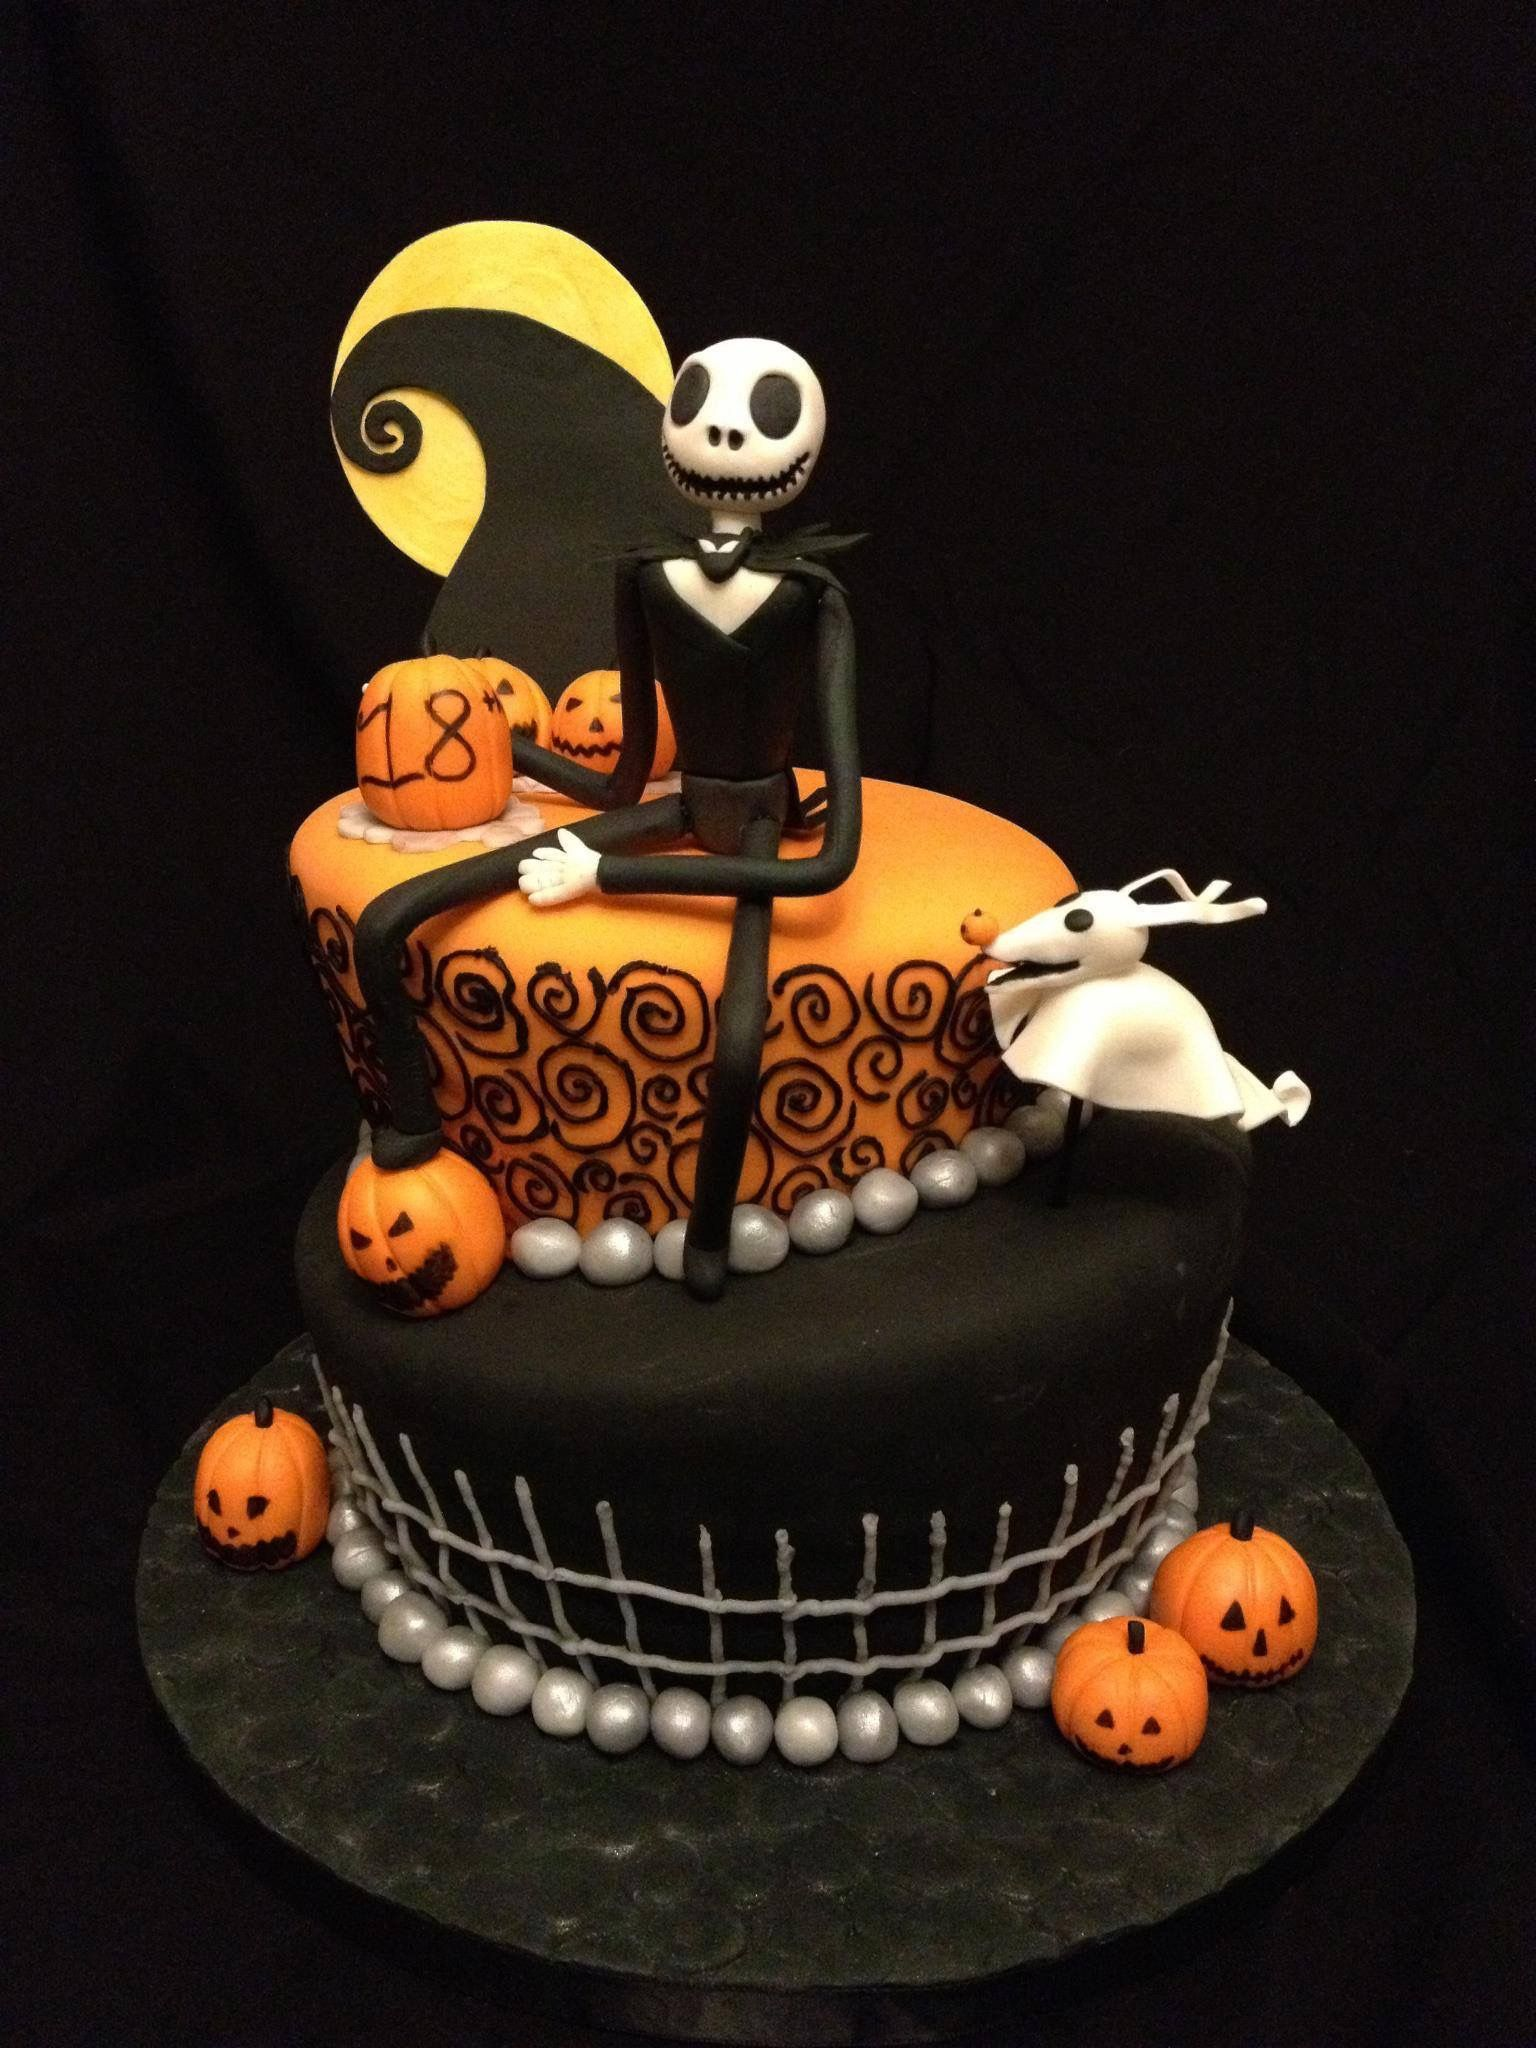 Pin By Janet Golden On Halloween Pinterest Cake Designs And Cake